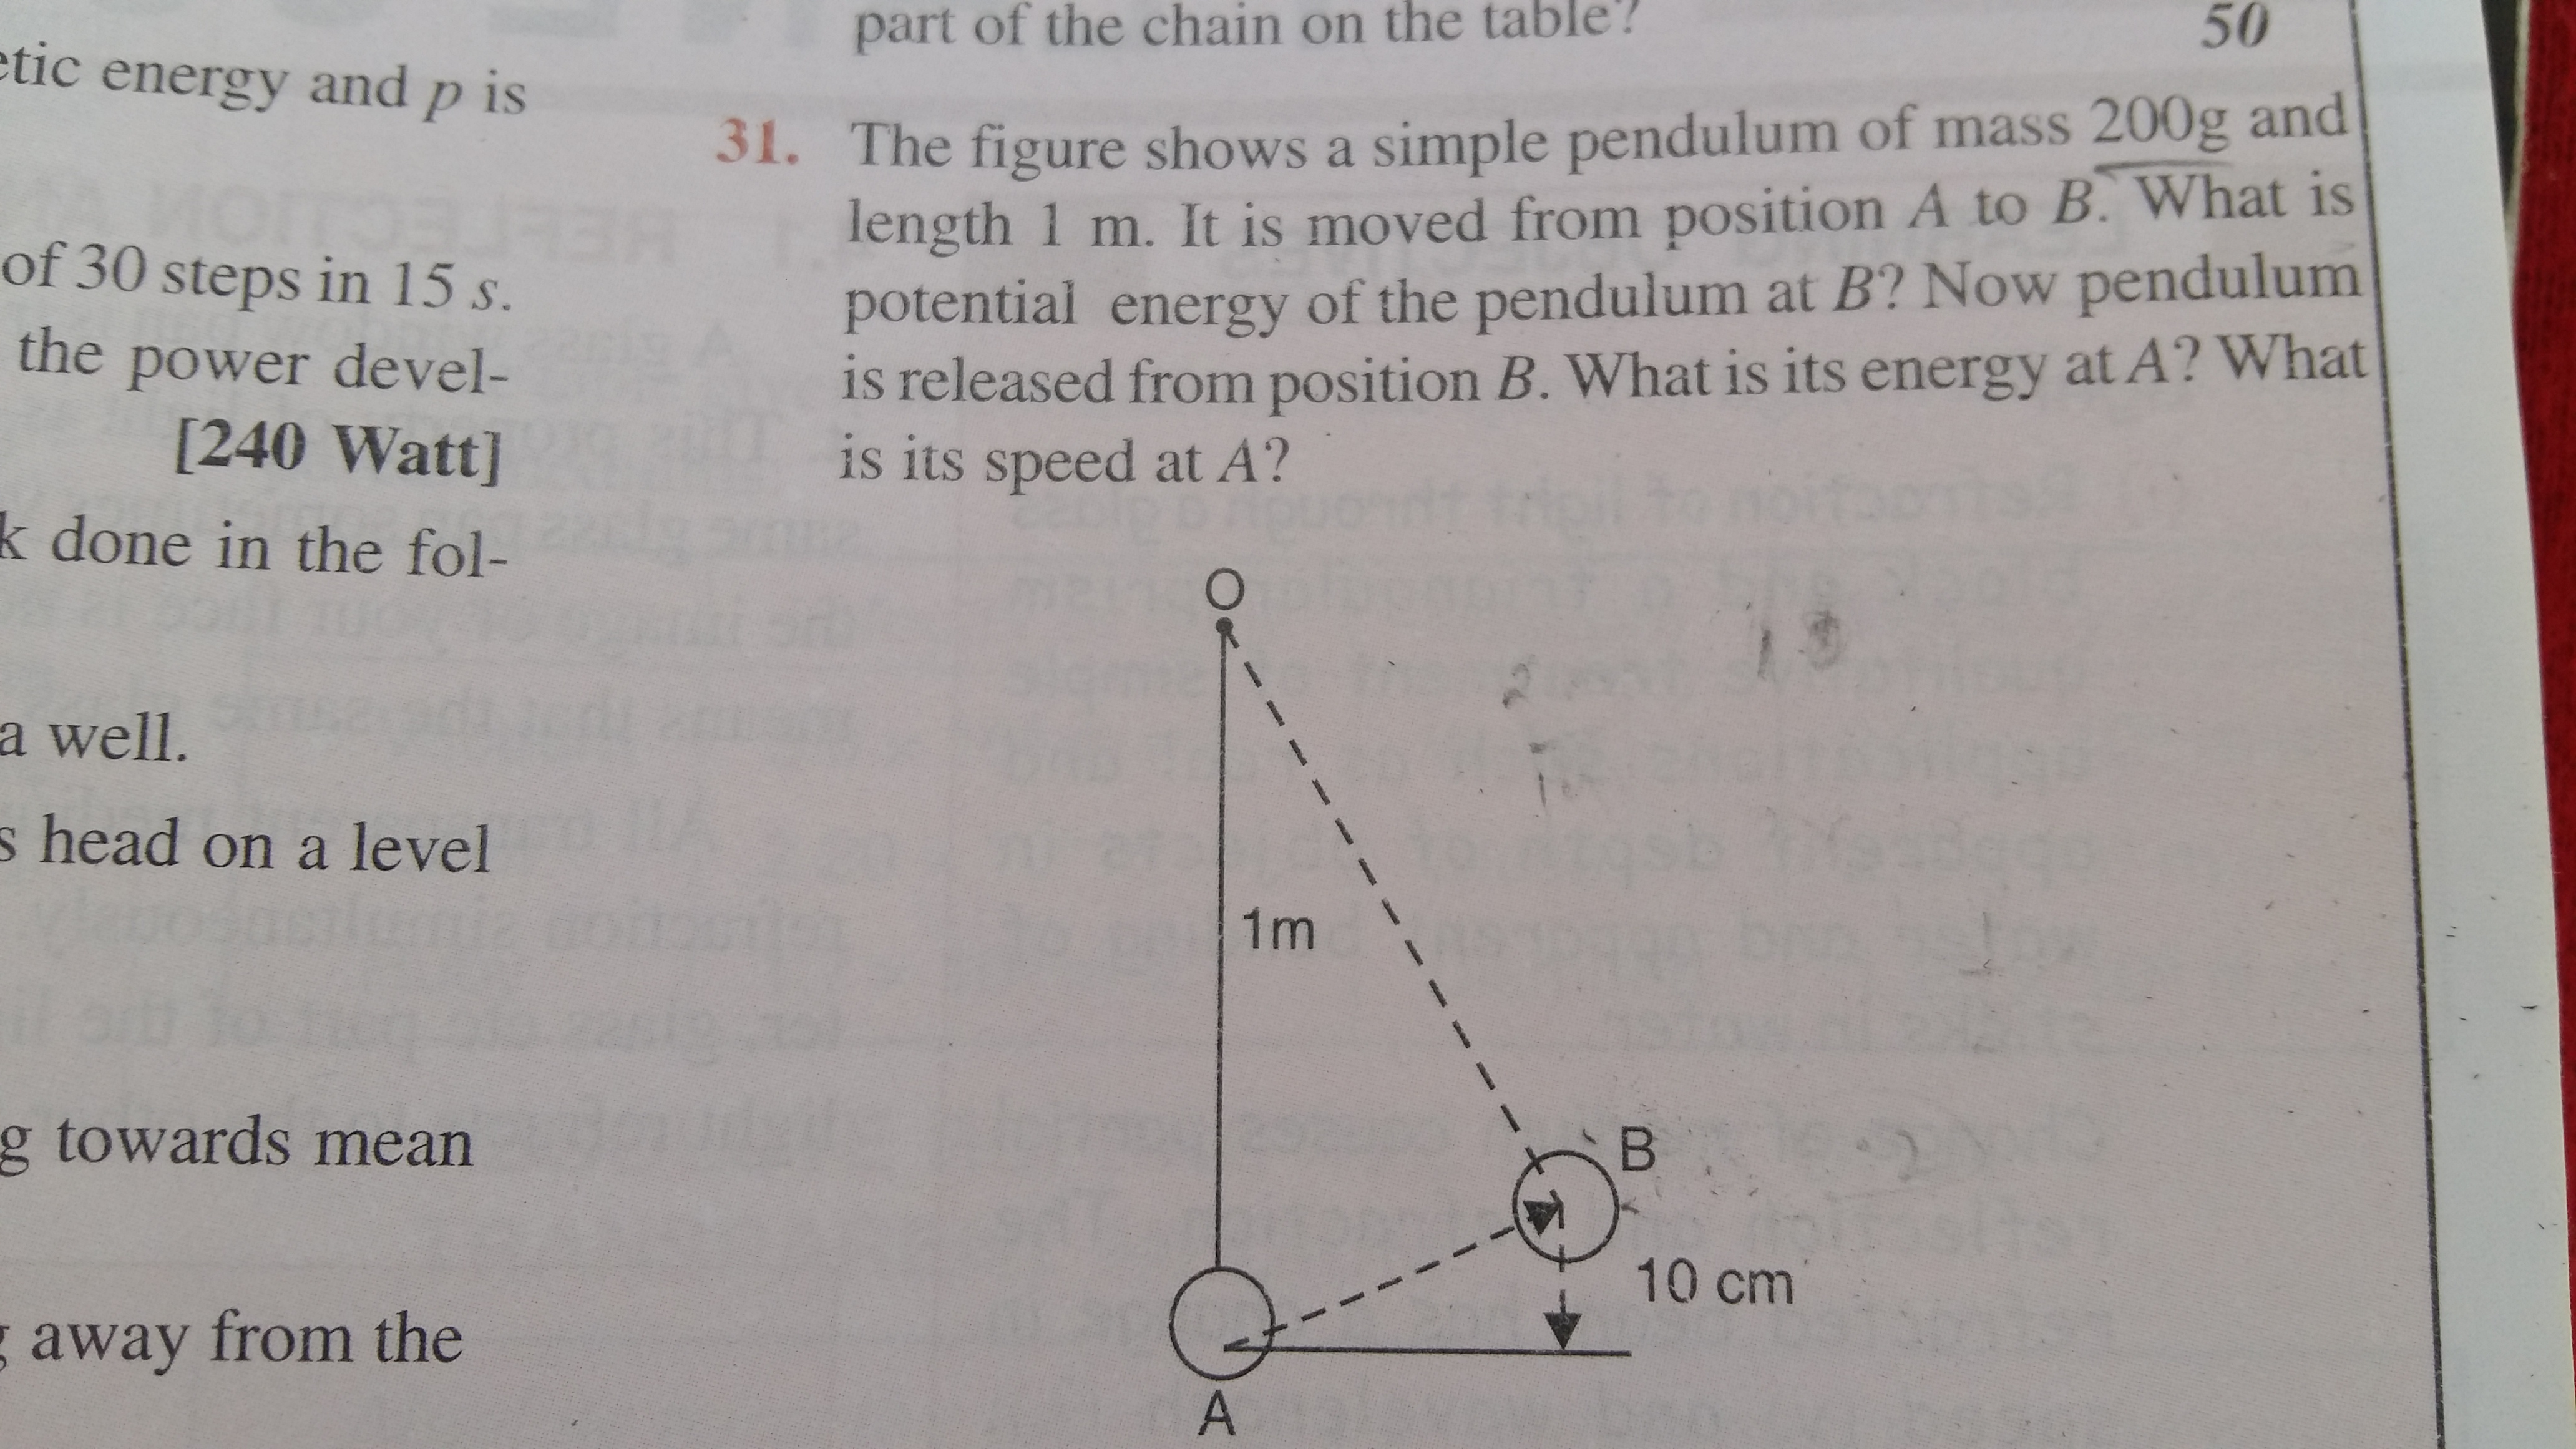 simple pendulum Questions and Answers - TopperLearning